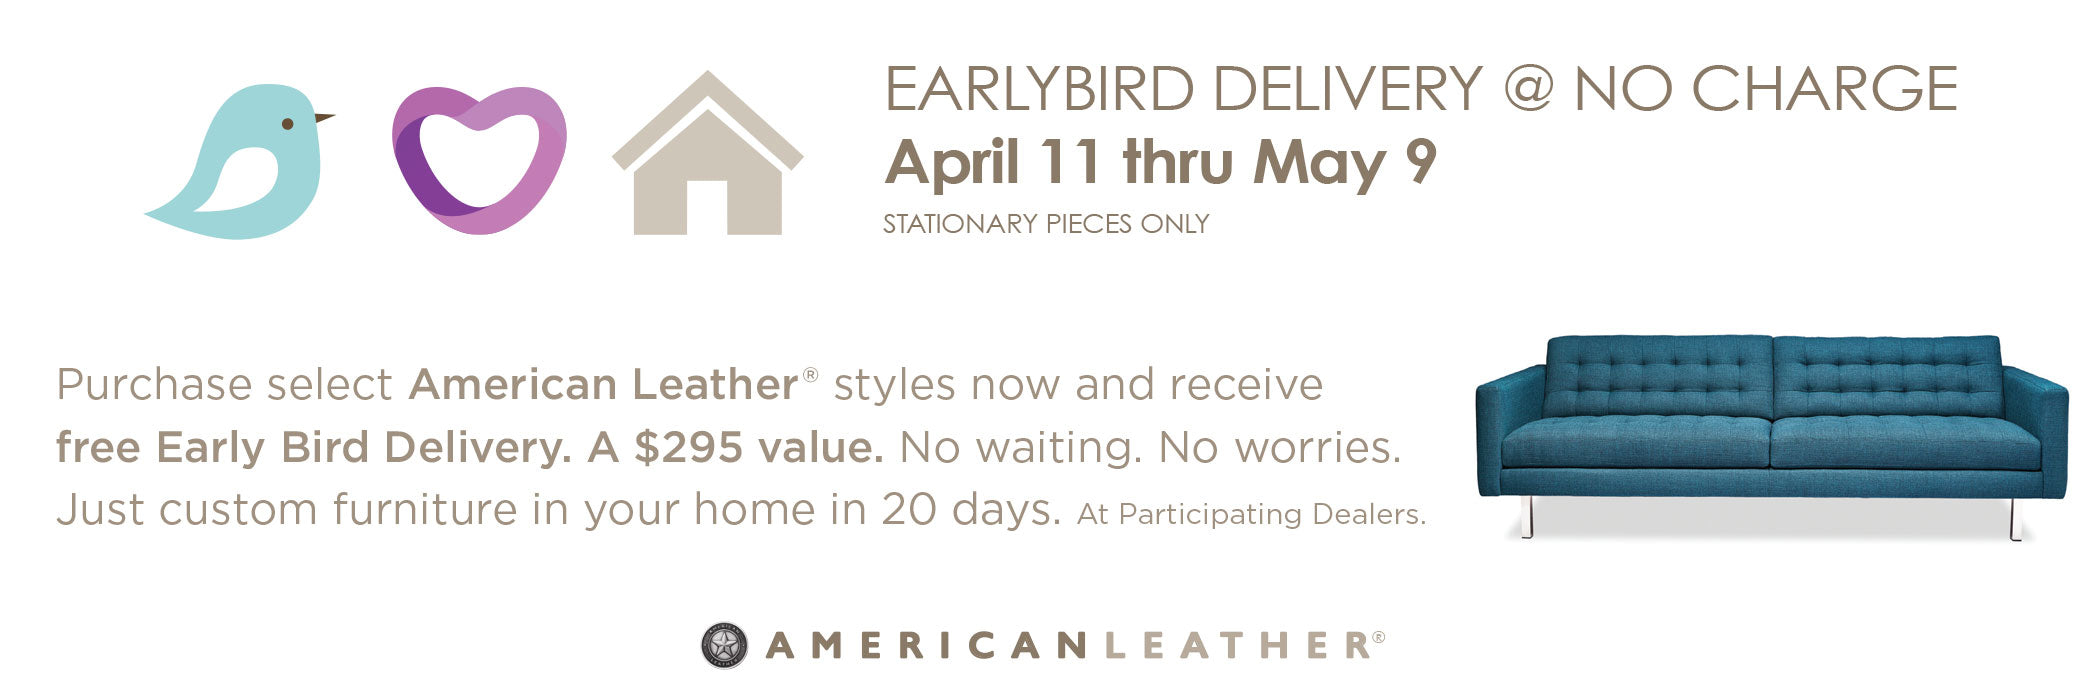 American Leather Early Bird Delivery Special